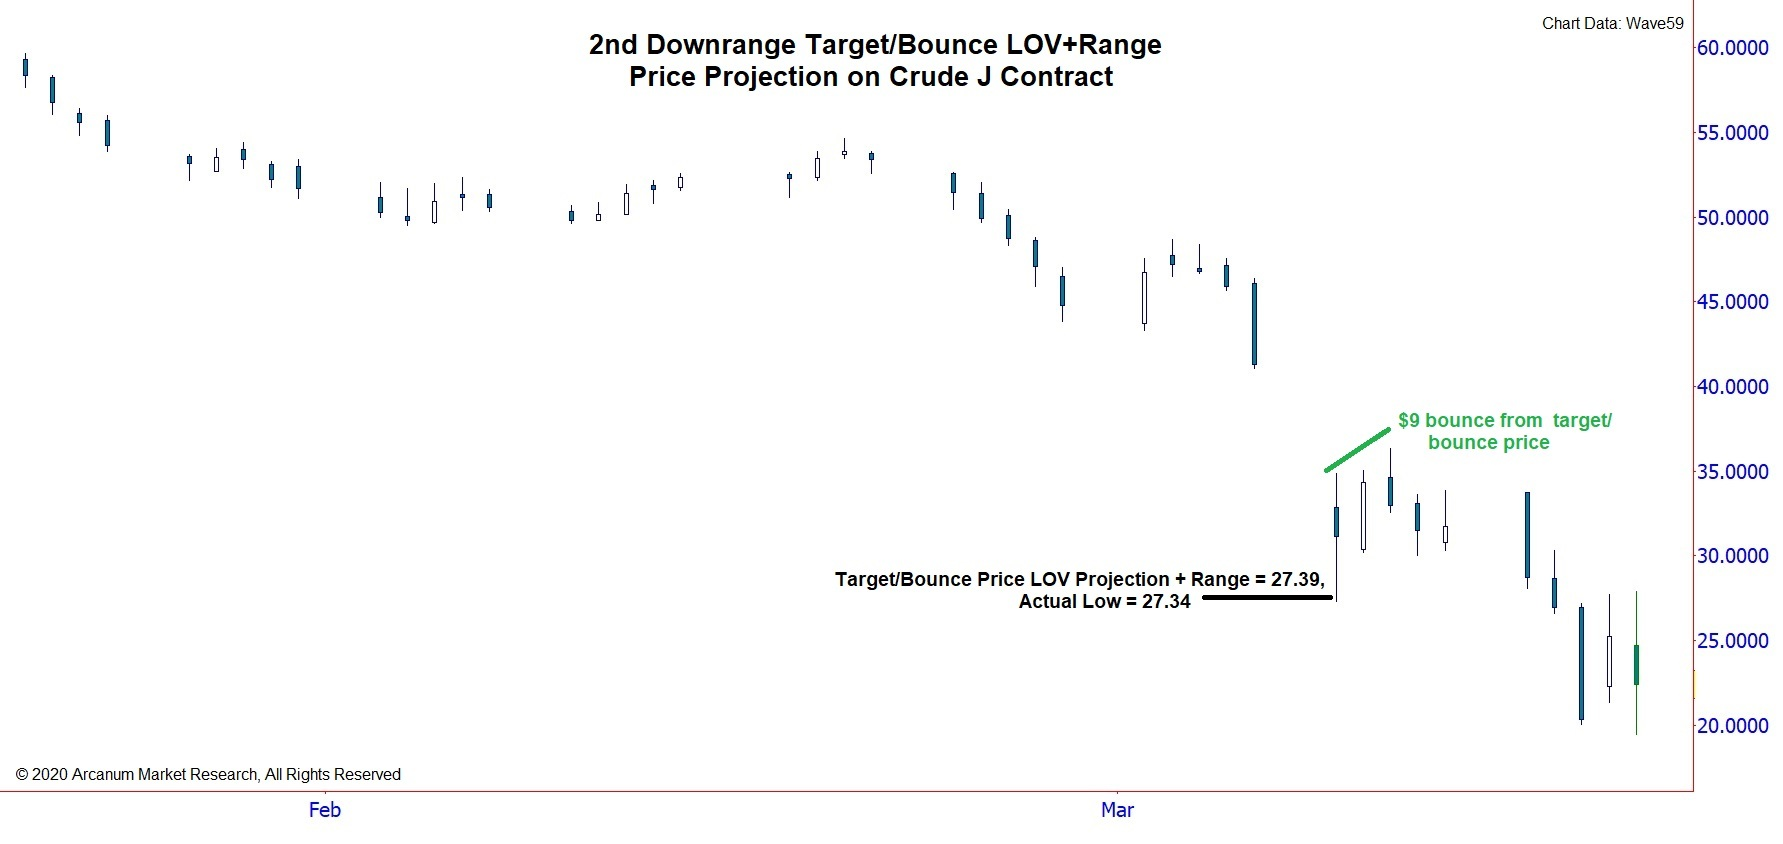 2nd Downrange Target/Bounce J Contract